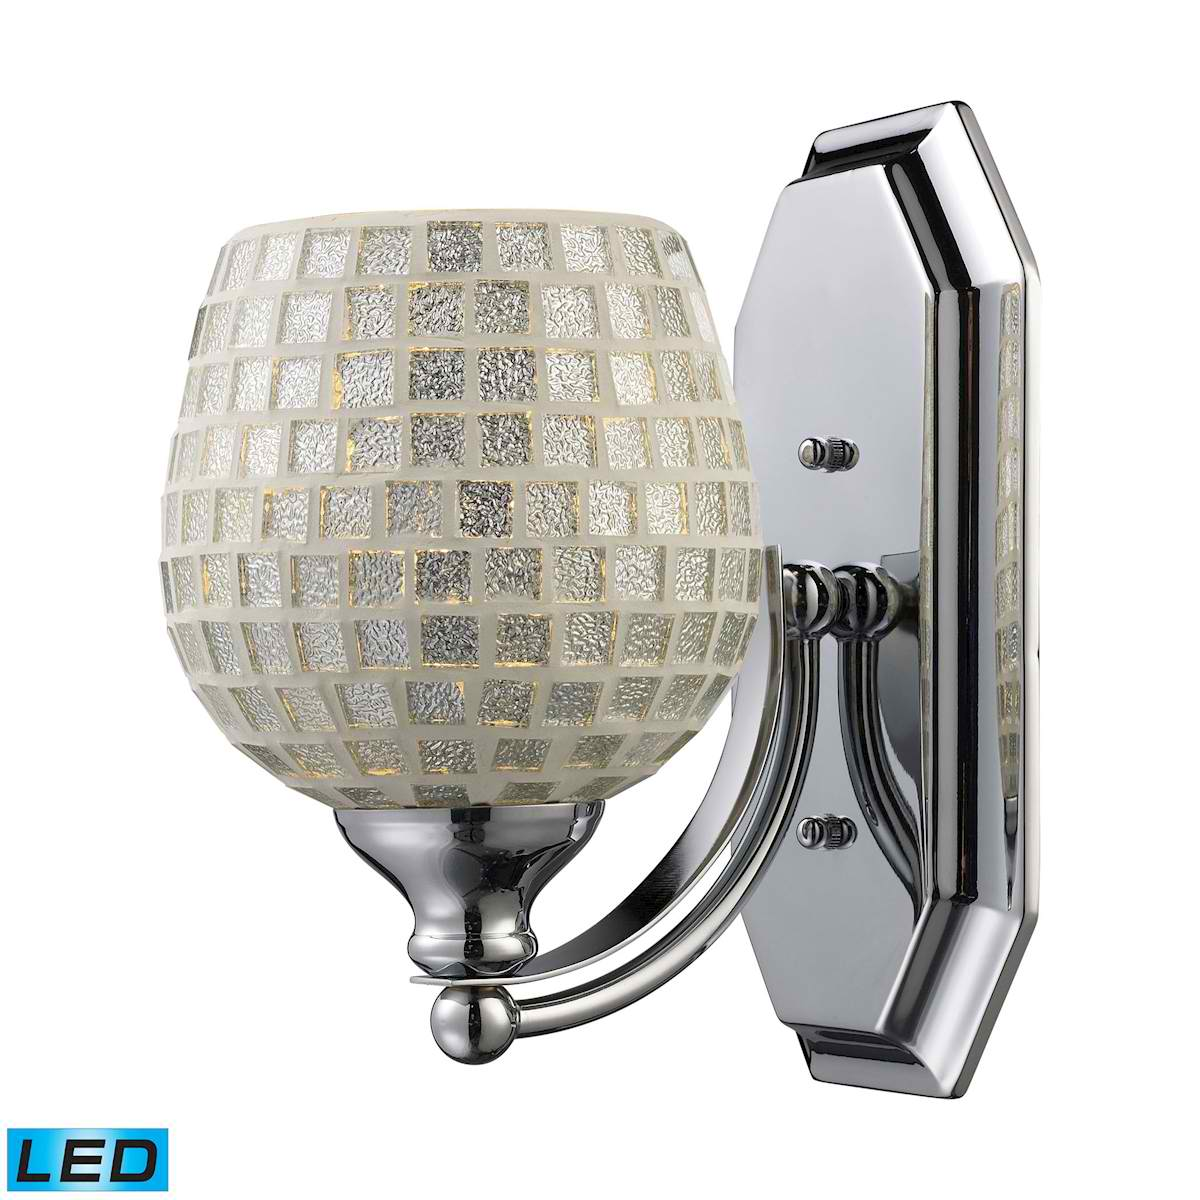 1 Light Vanity in Polished Chrome and Silver Mosaic Glass - LED Offering Up To 800 Lumens (60 Watt Equivalent)